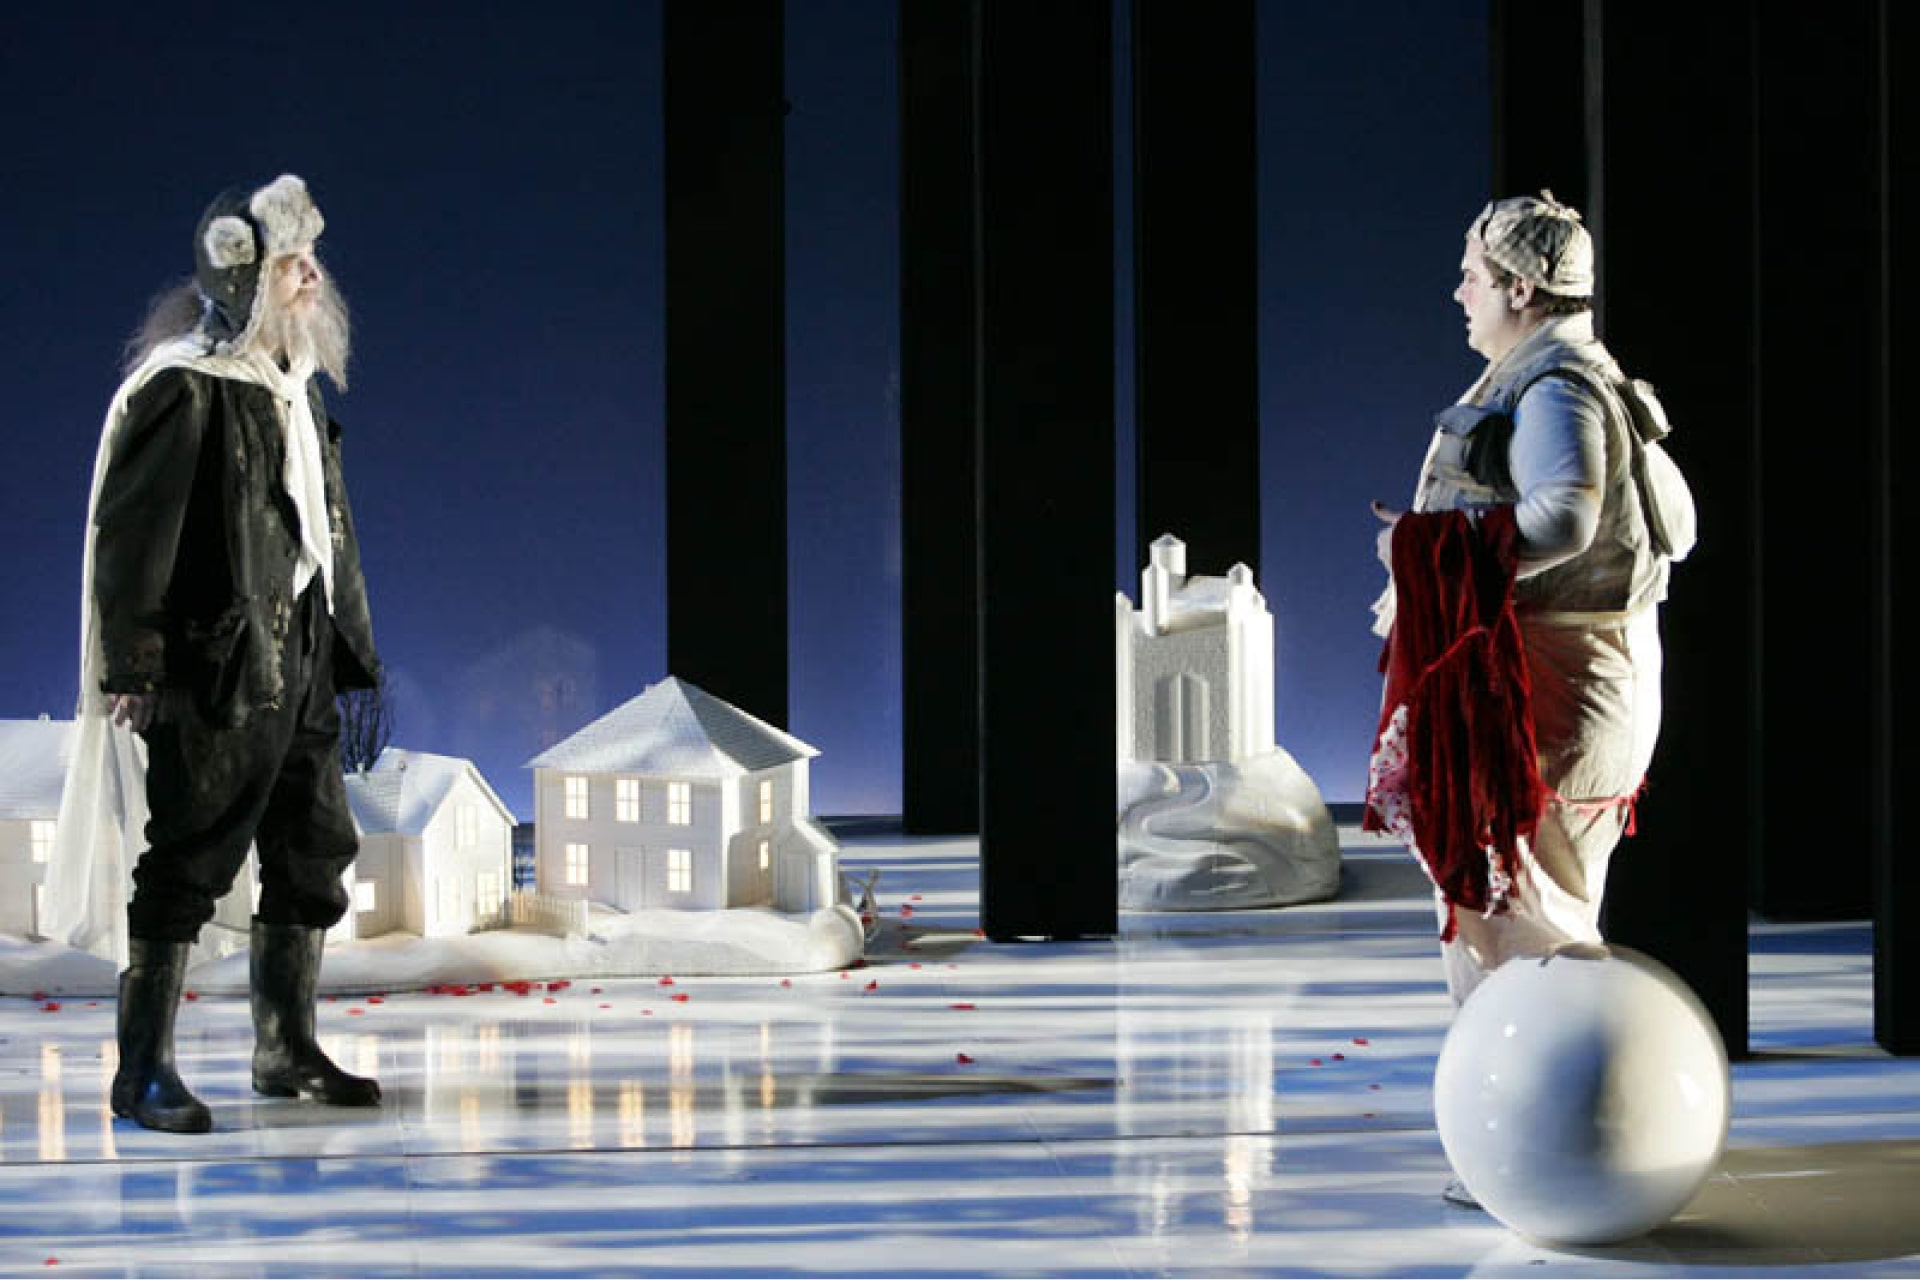 Man in boots and winter hat speak with man in checkered hat carrying red cloak, amongst model houses on white stage.